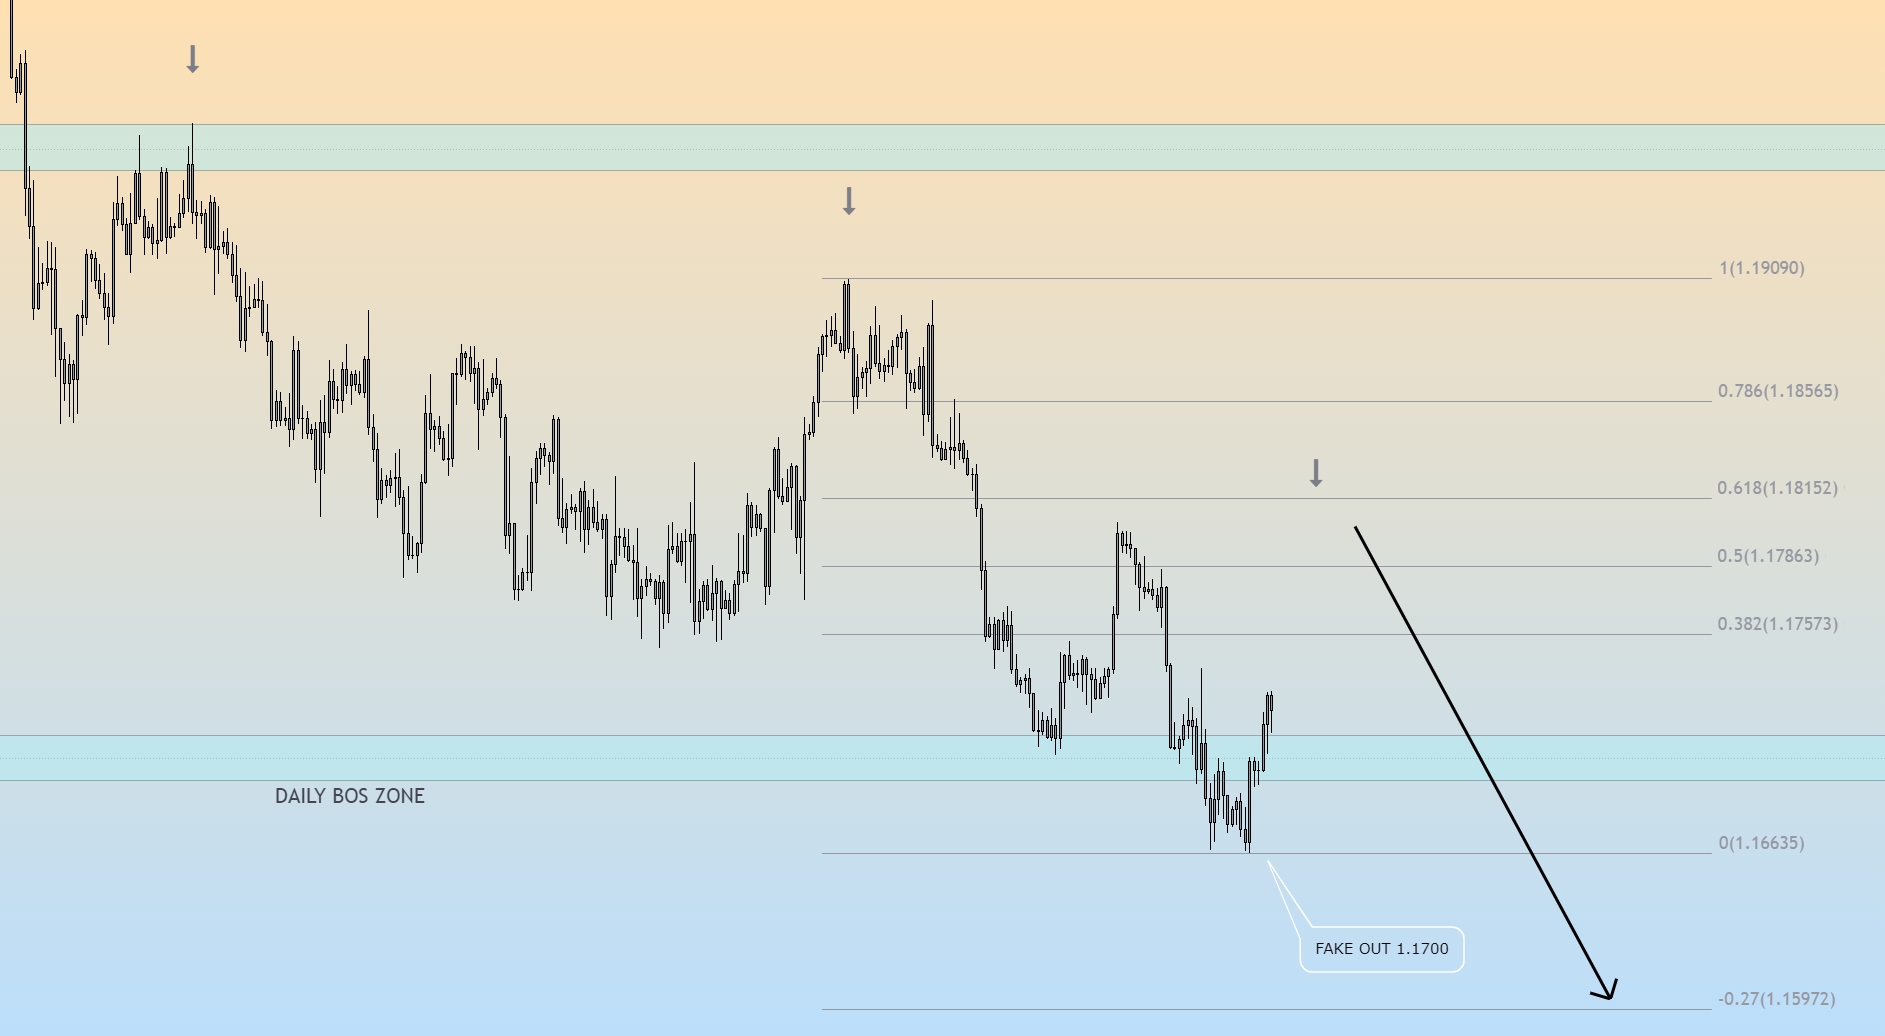 EUR/USD H4 Top down, multi-timeframe structure analysis